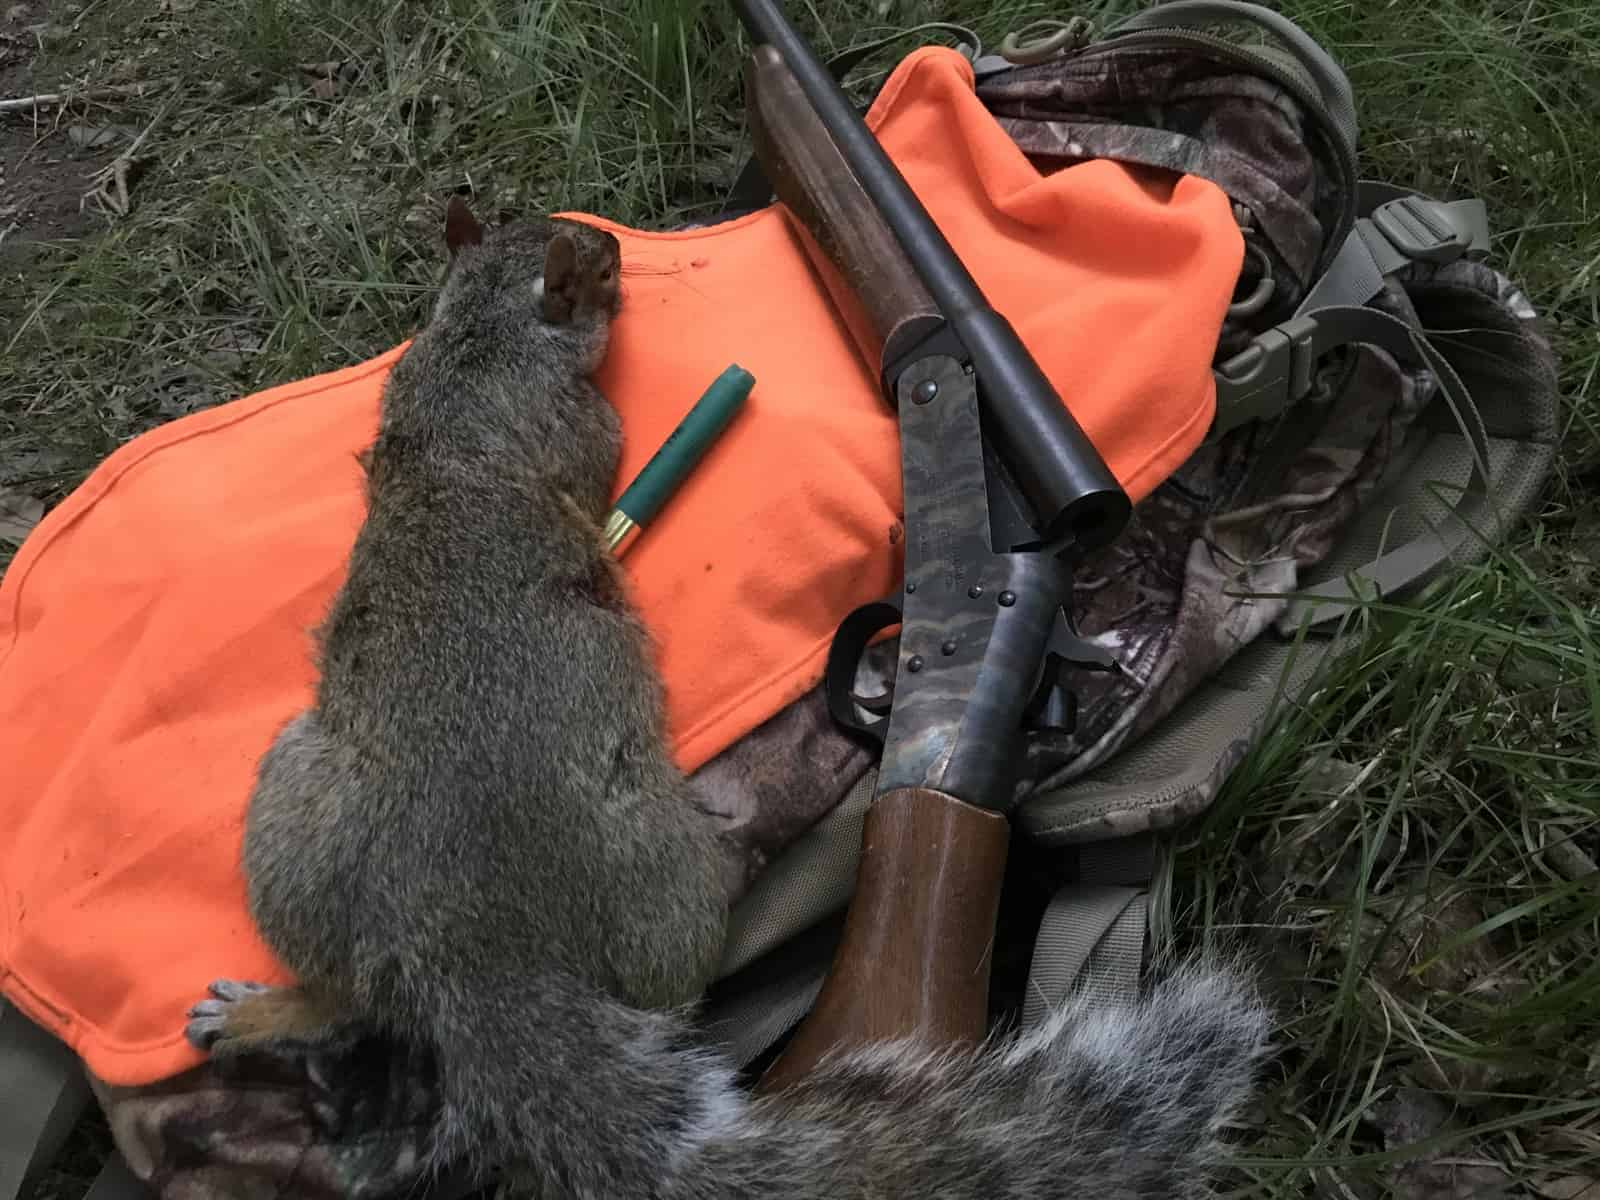 Squirrel Hunting & The Difference Between Seeing and Noticing 4